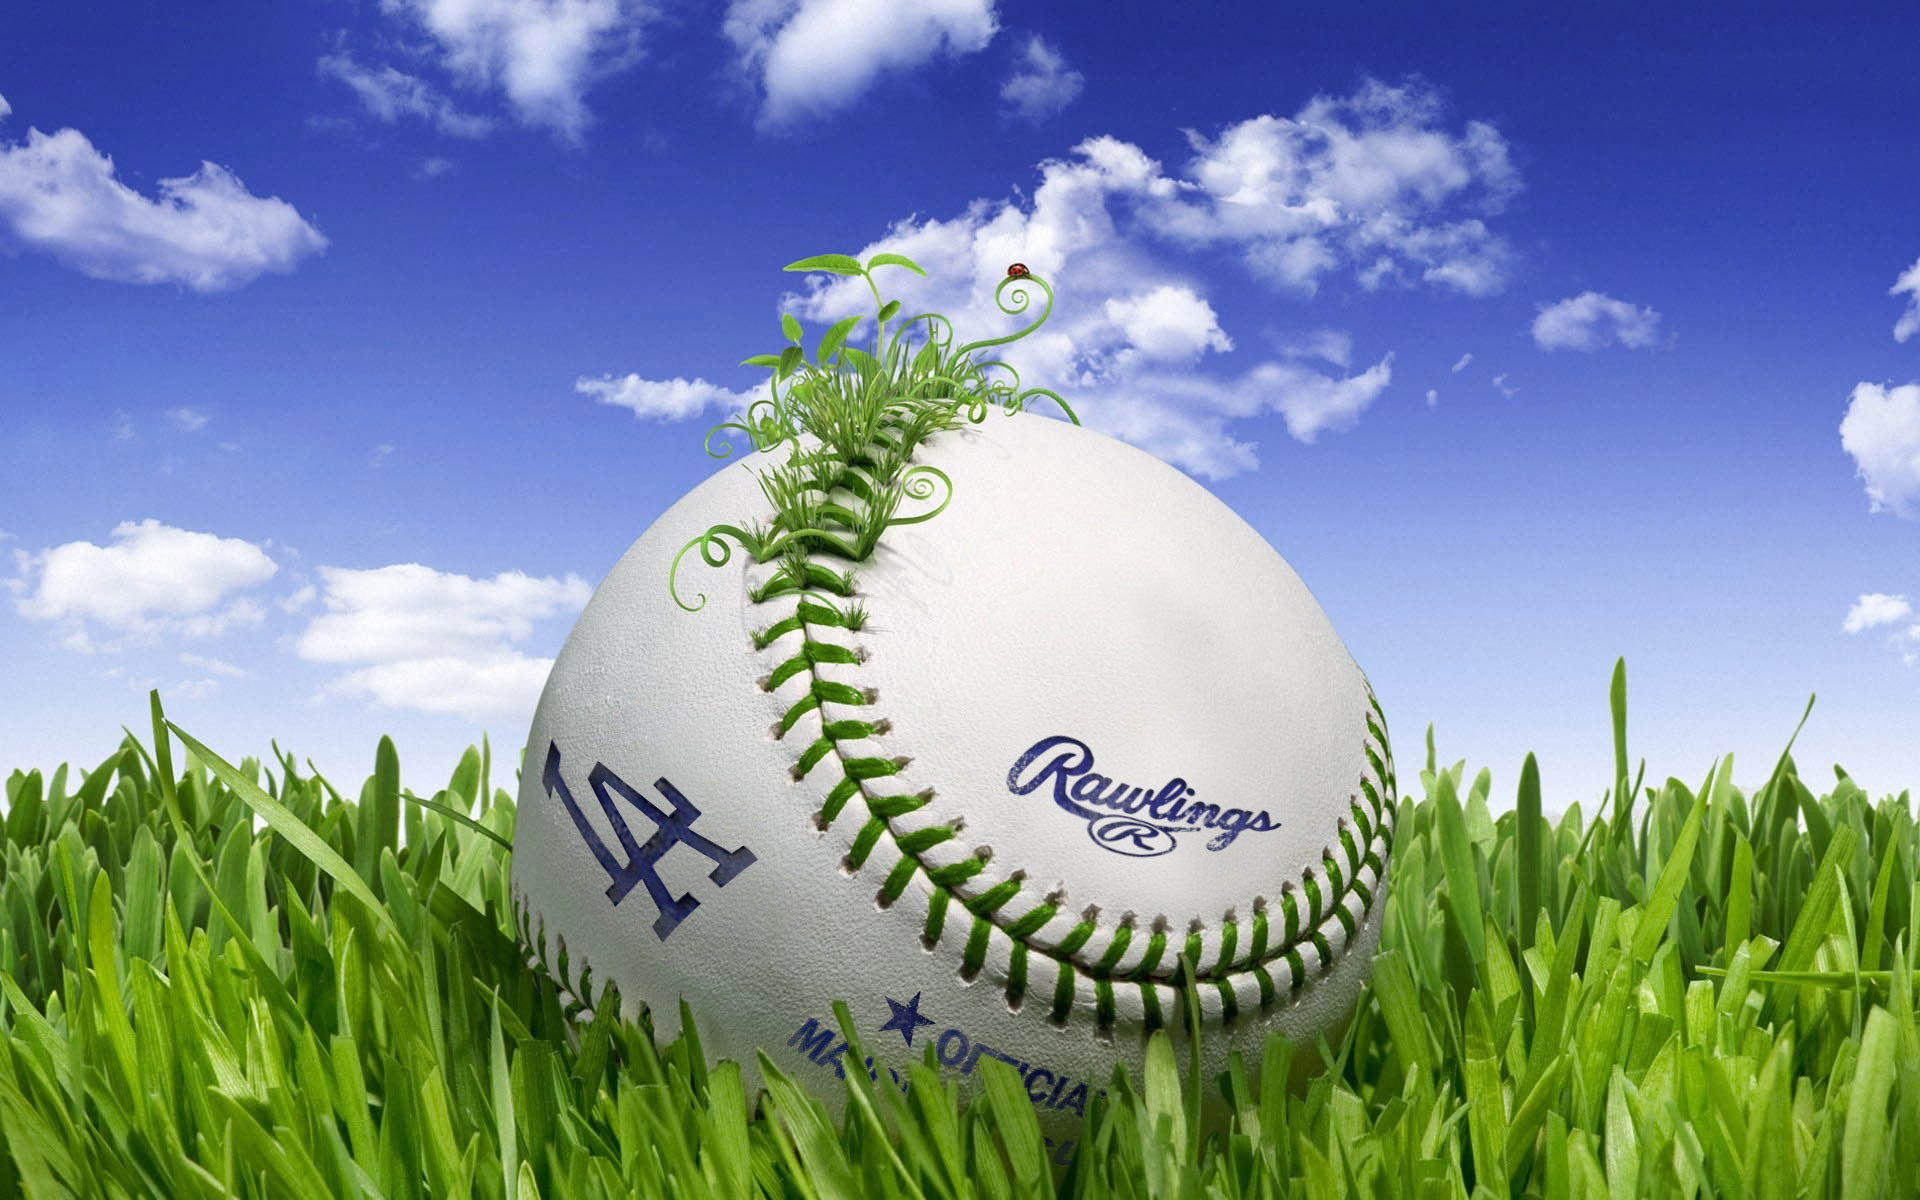 Free Los Angeles Dodgers Wallpapers Beautiful   HD Wallpapers   Pinterest    Dodgers, Los angeles and Angeles